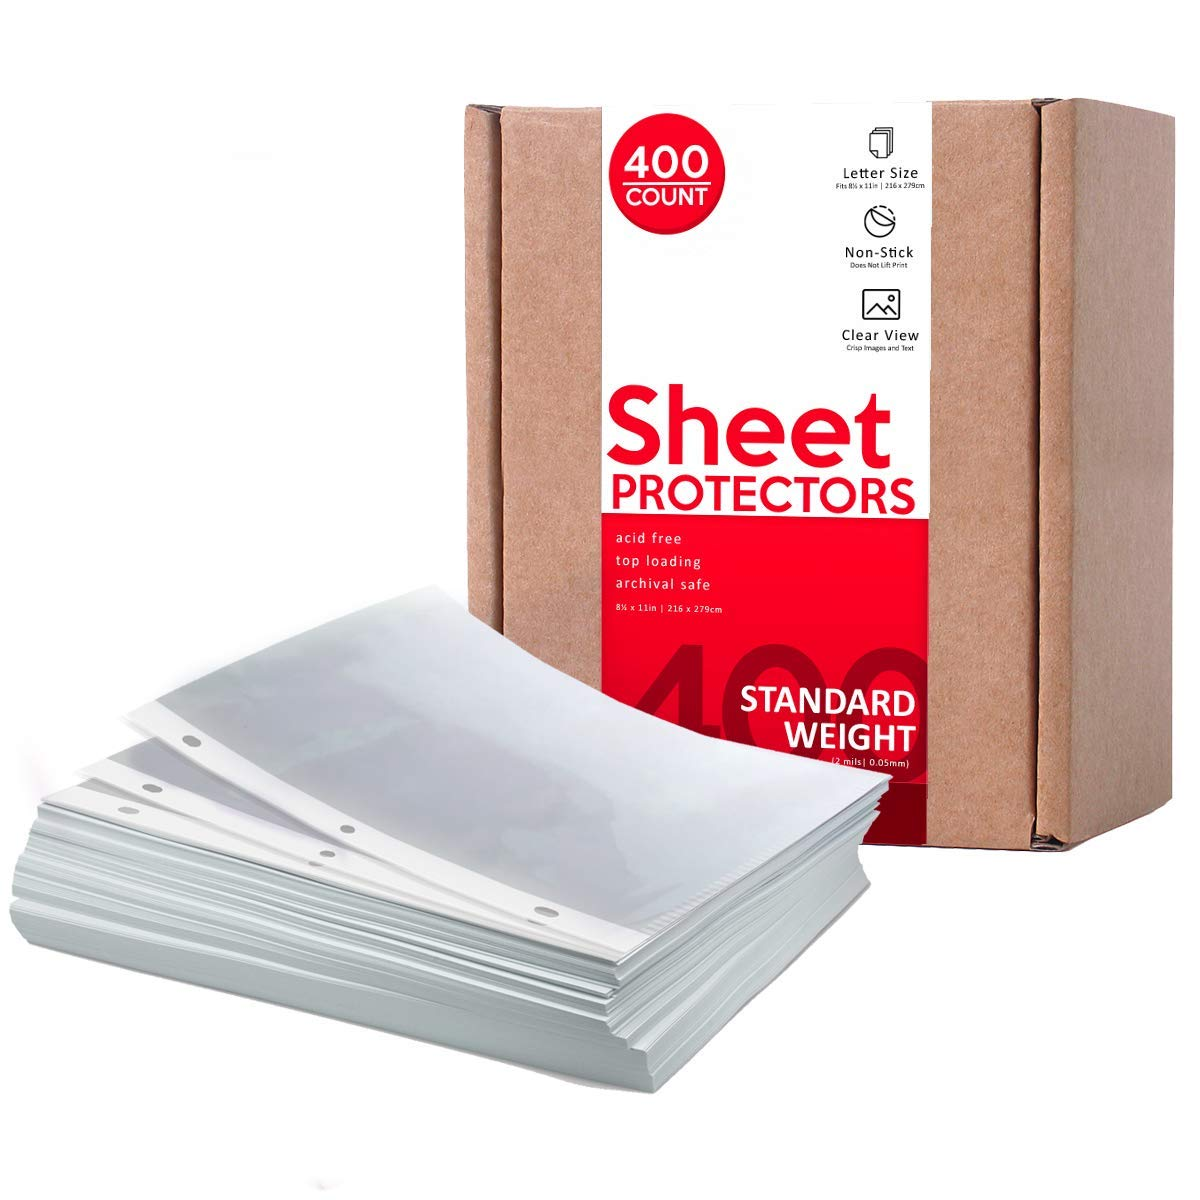 Huntz Standard Weight Clear Sheet Protectors - Letter Size (400 Pack) by Huntz